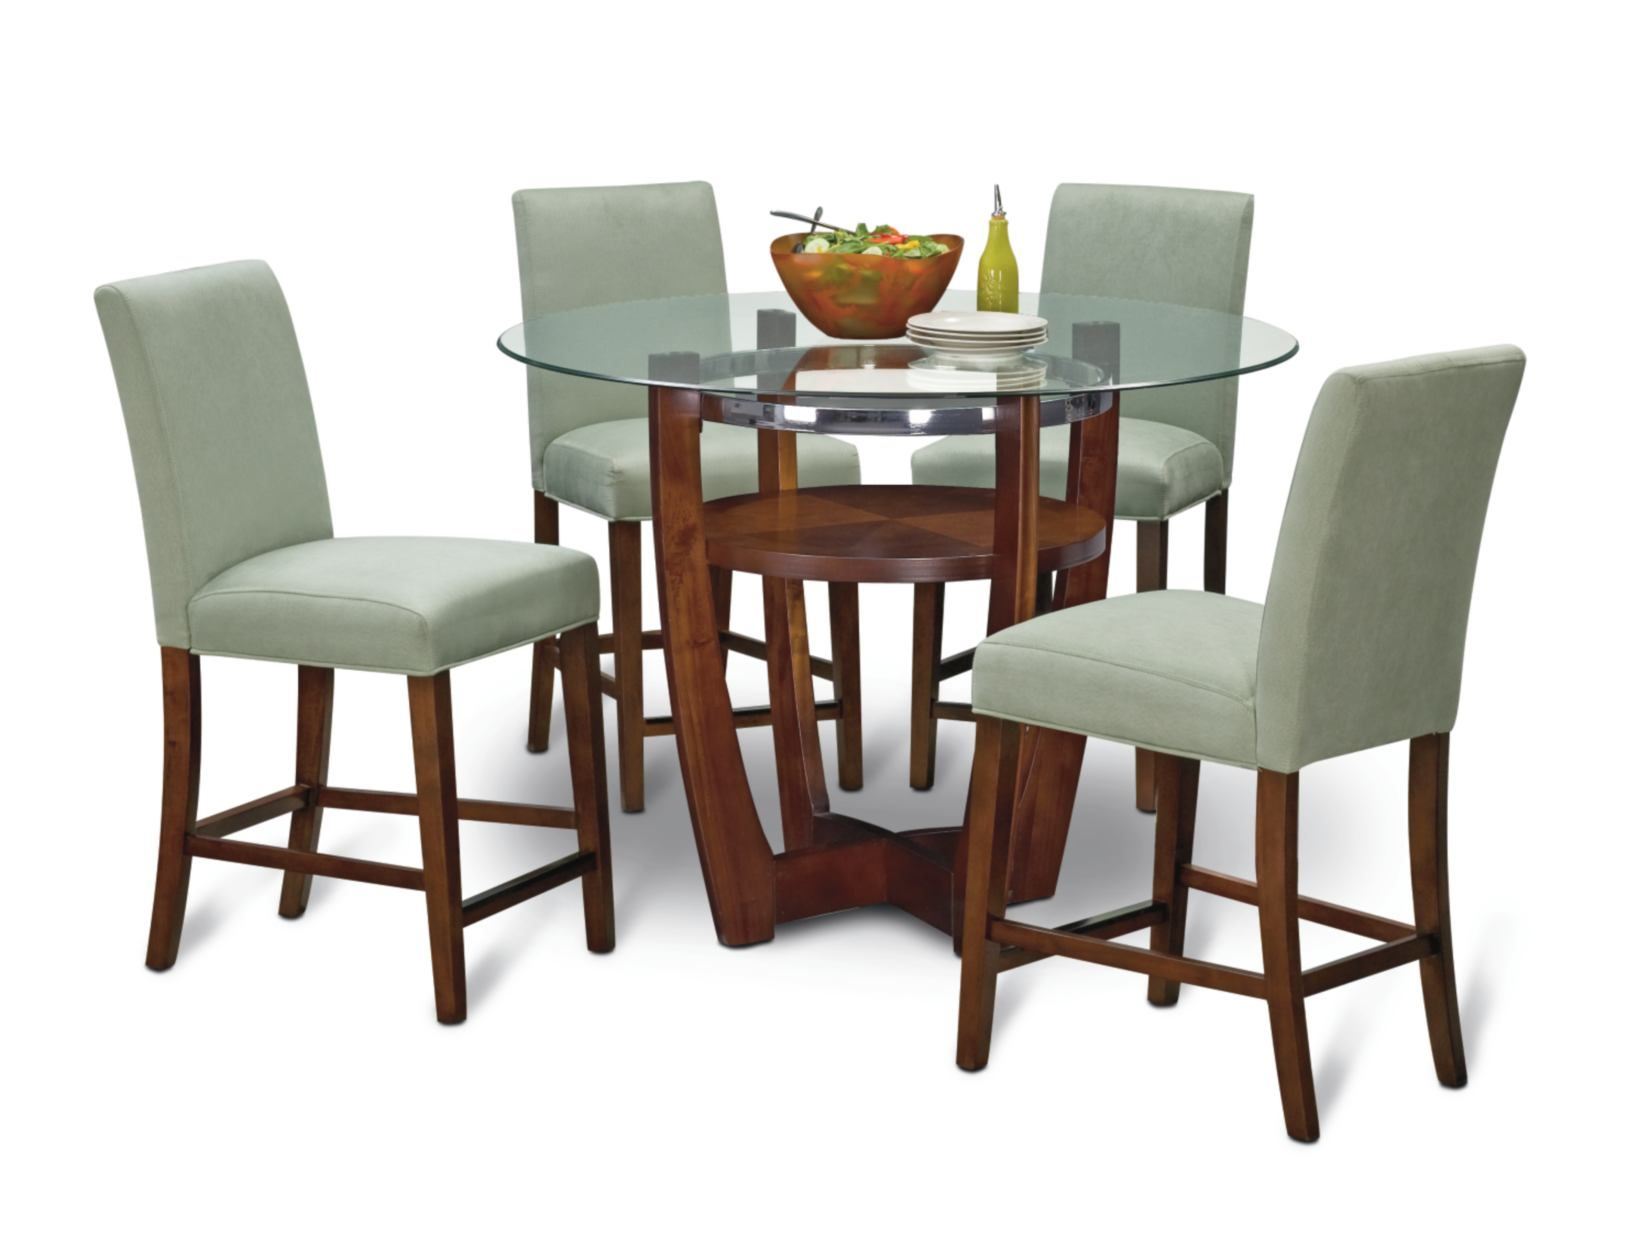 alcove sage 5-pc counter height dinette - value city furniture